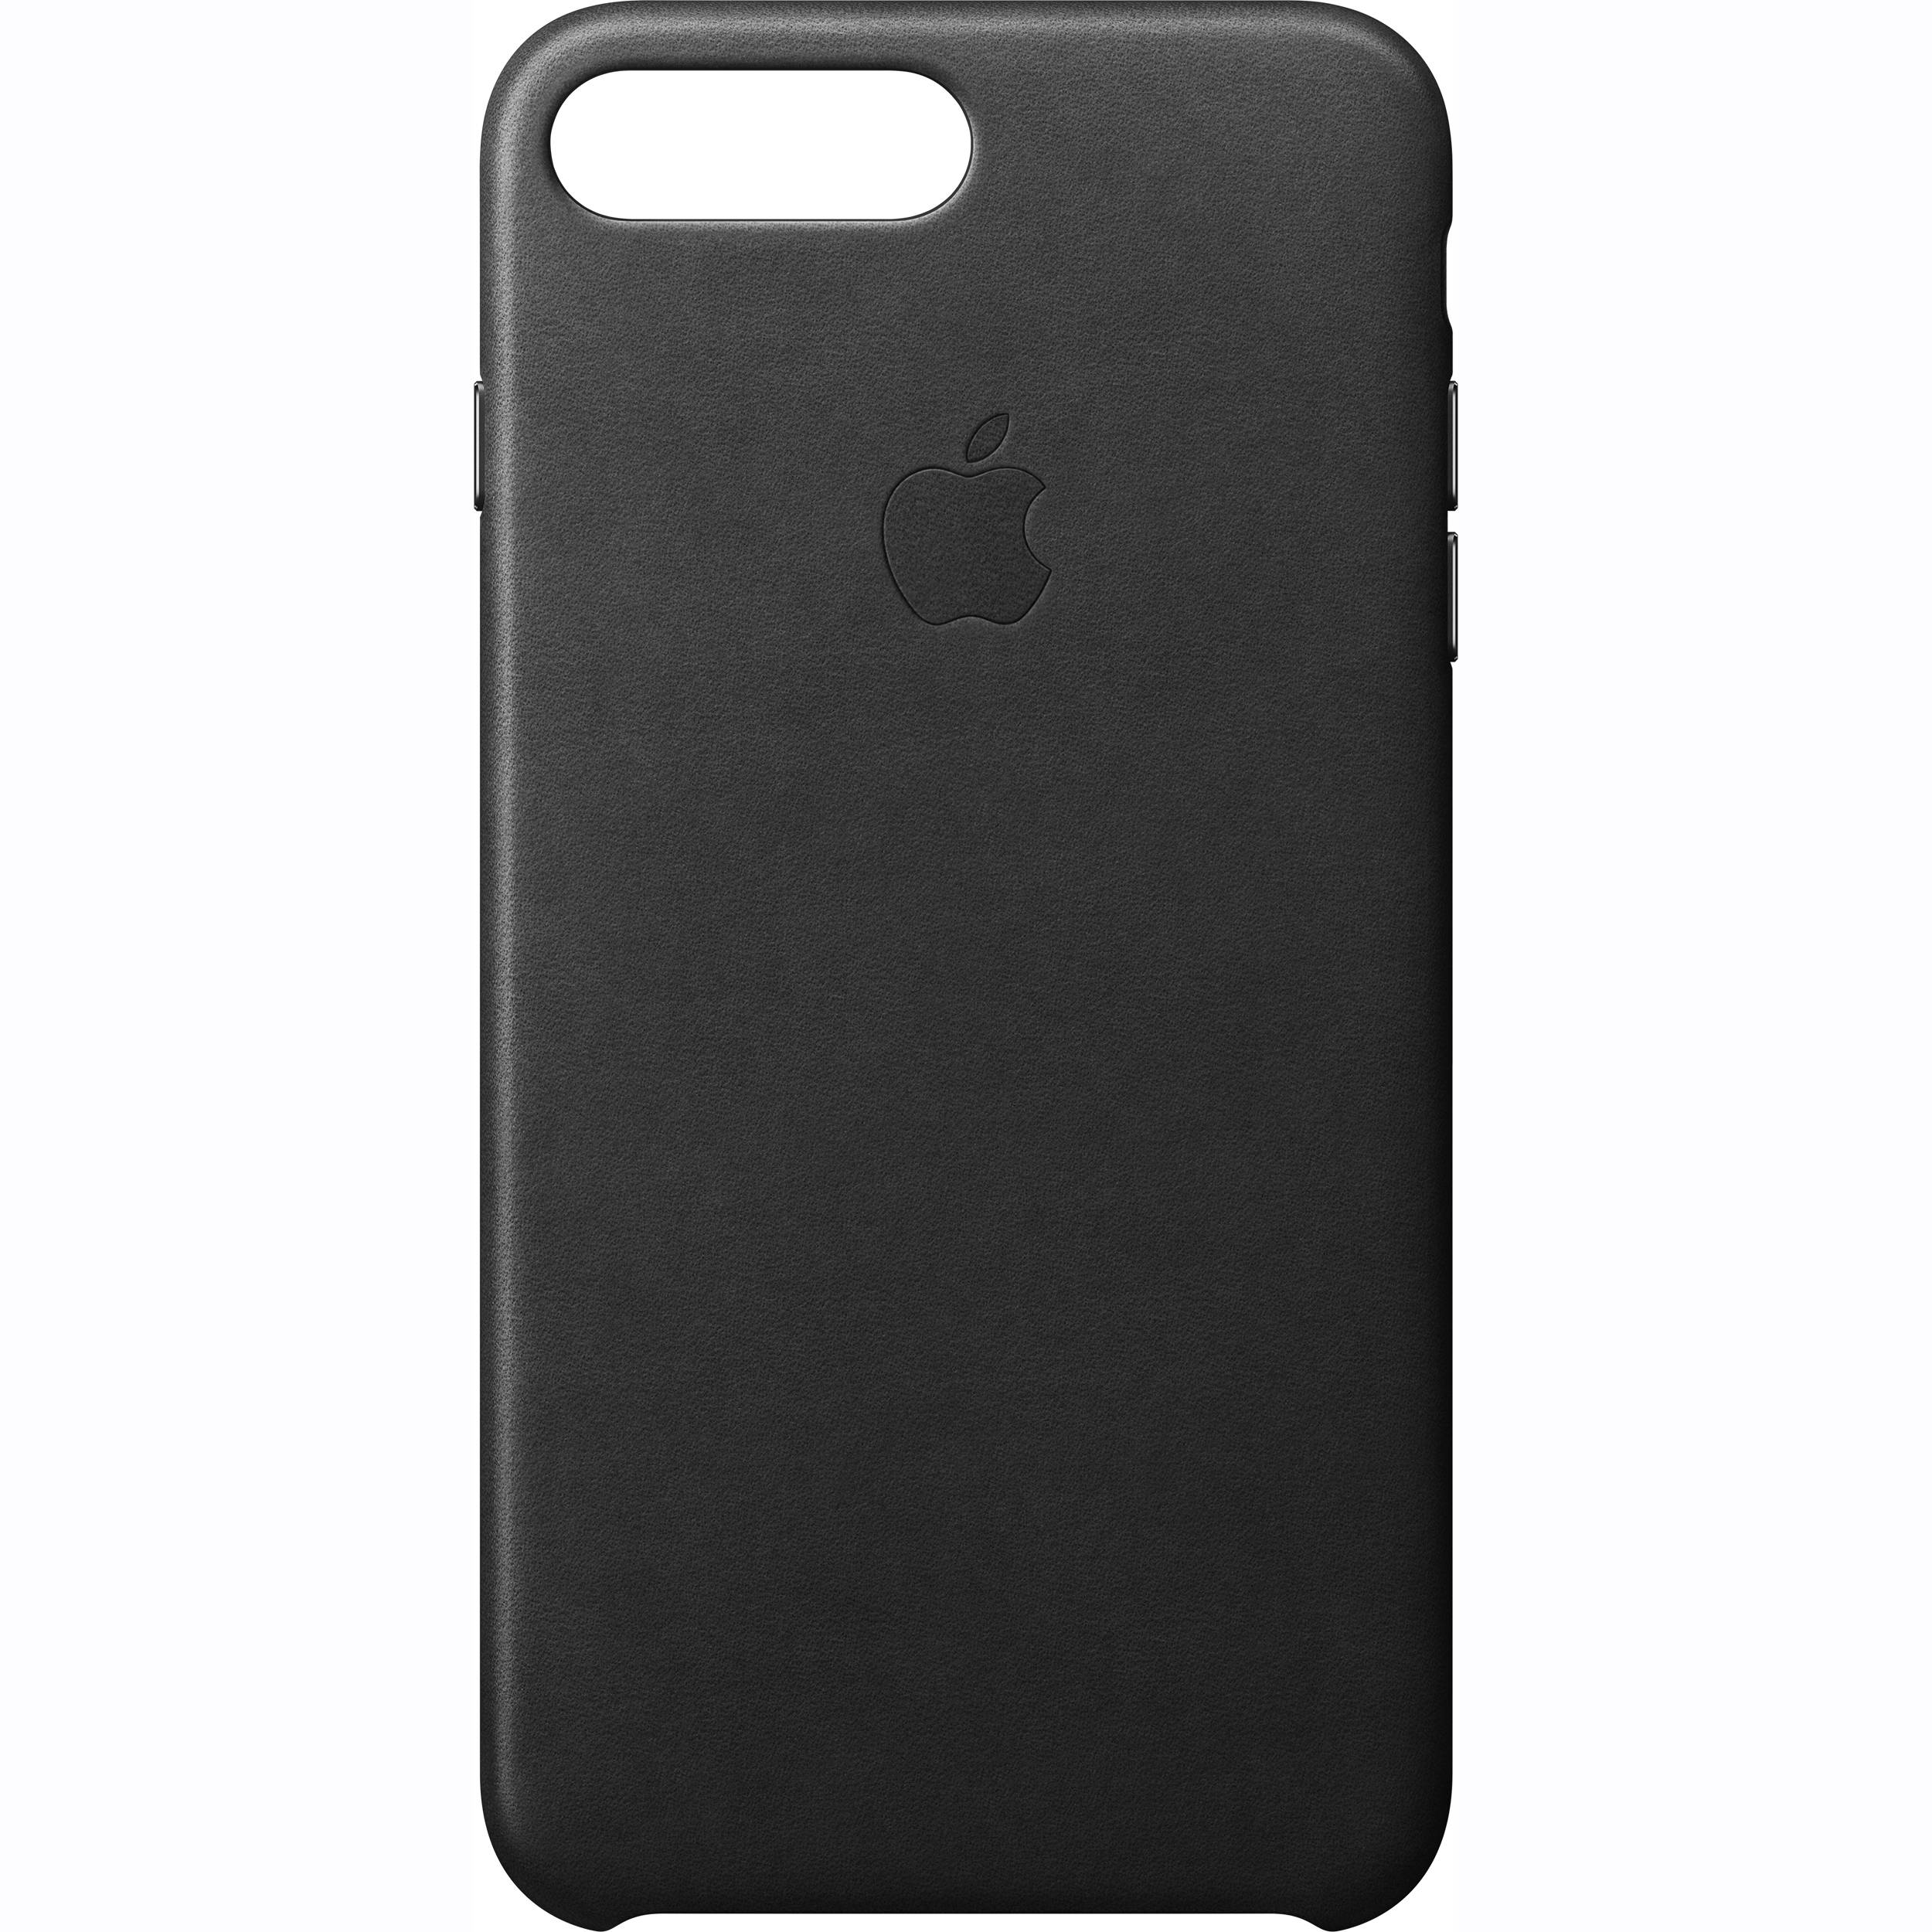 MMYJ2ZM/A Apple Kožený Kryt Black pro iPhone 7 Plus (EU Blister)